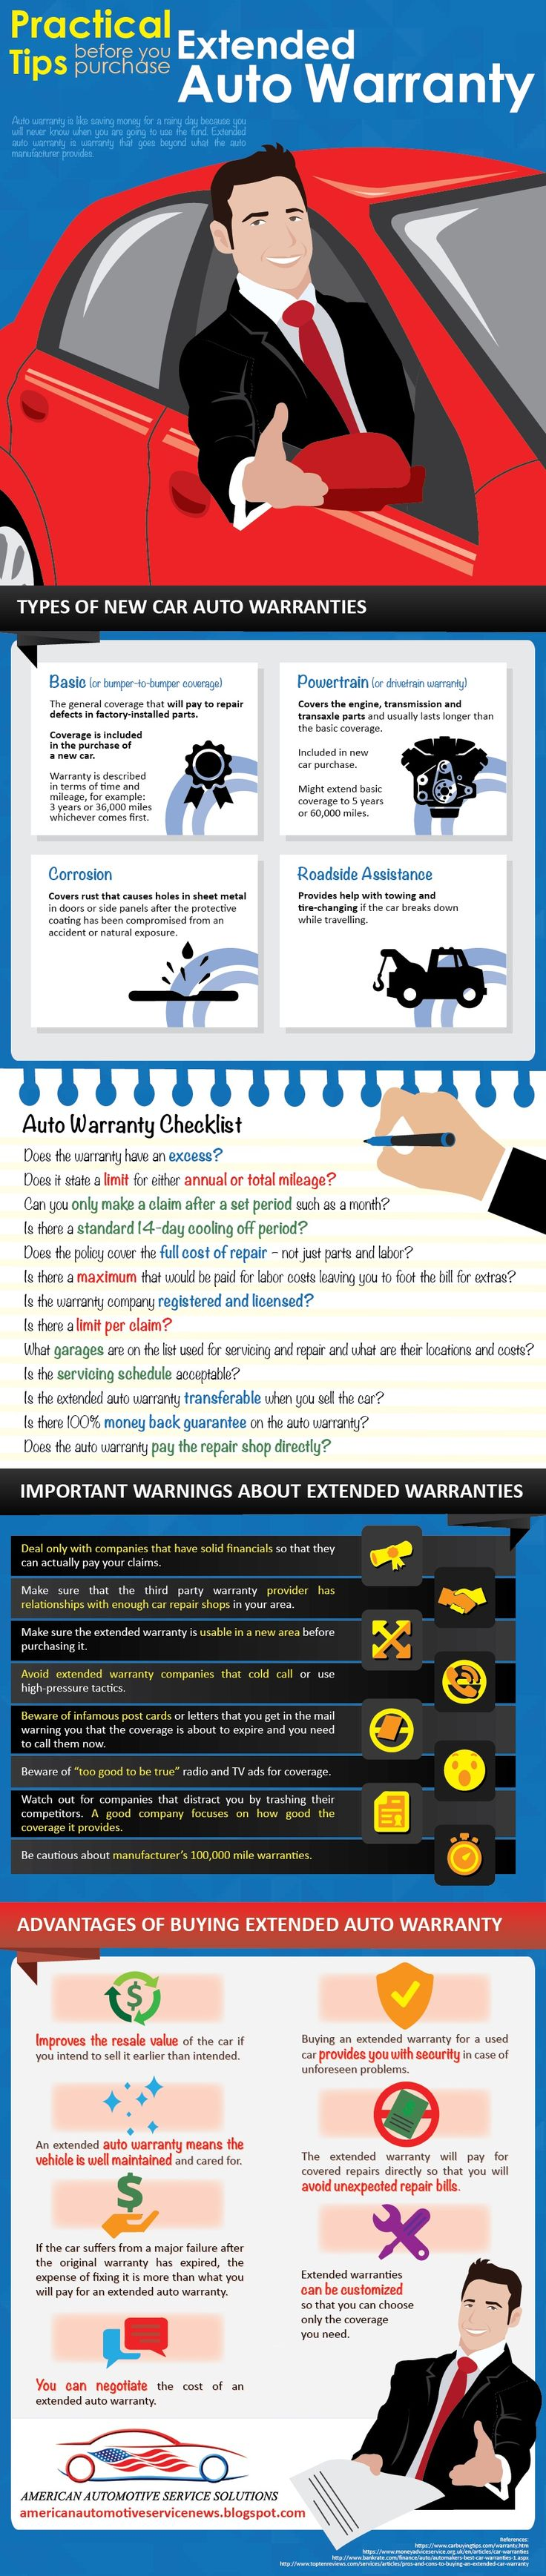 Practical Tips before you purchase Extended Auto Warranty - Sometimes, it is a good idea to buy an extended auto warranty because it is inevitable that the car will break down. When the time comes that the car needs repair, you will not be footing the bill for the unfortunate situation. Auto warranty is like saving money for a rainy day because you will never know when you are going to use the fund. Extended auto warranty is warranty that goes beyond what the auto manufacturer provides.